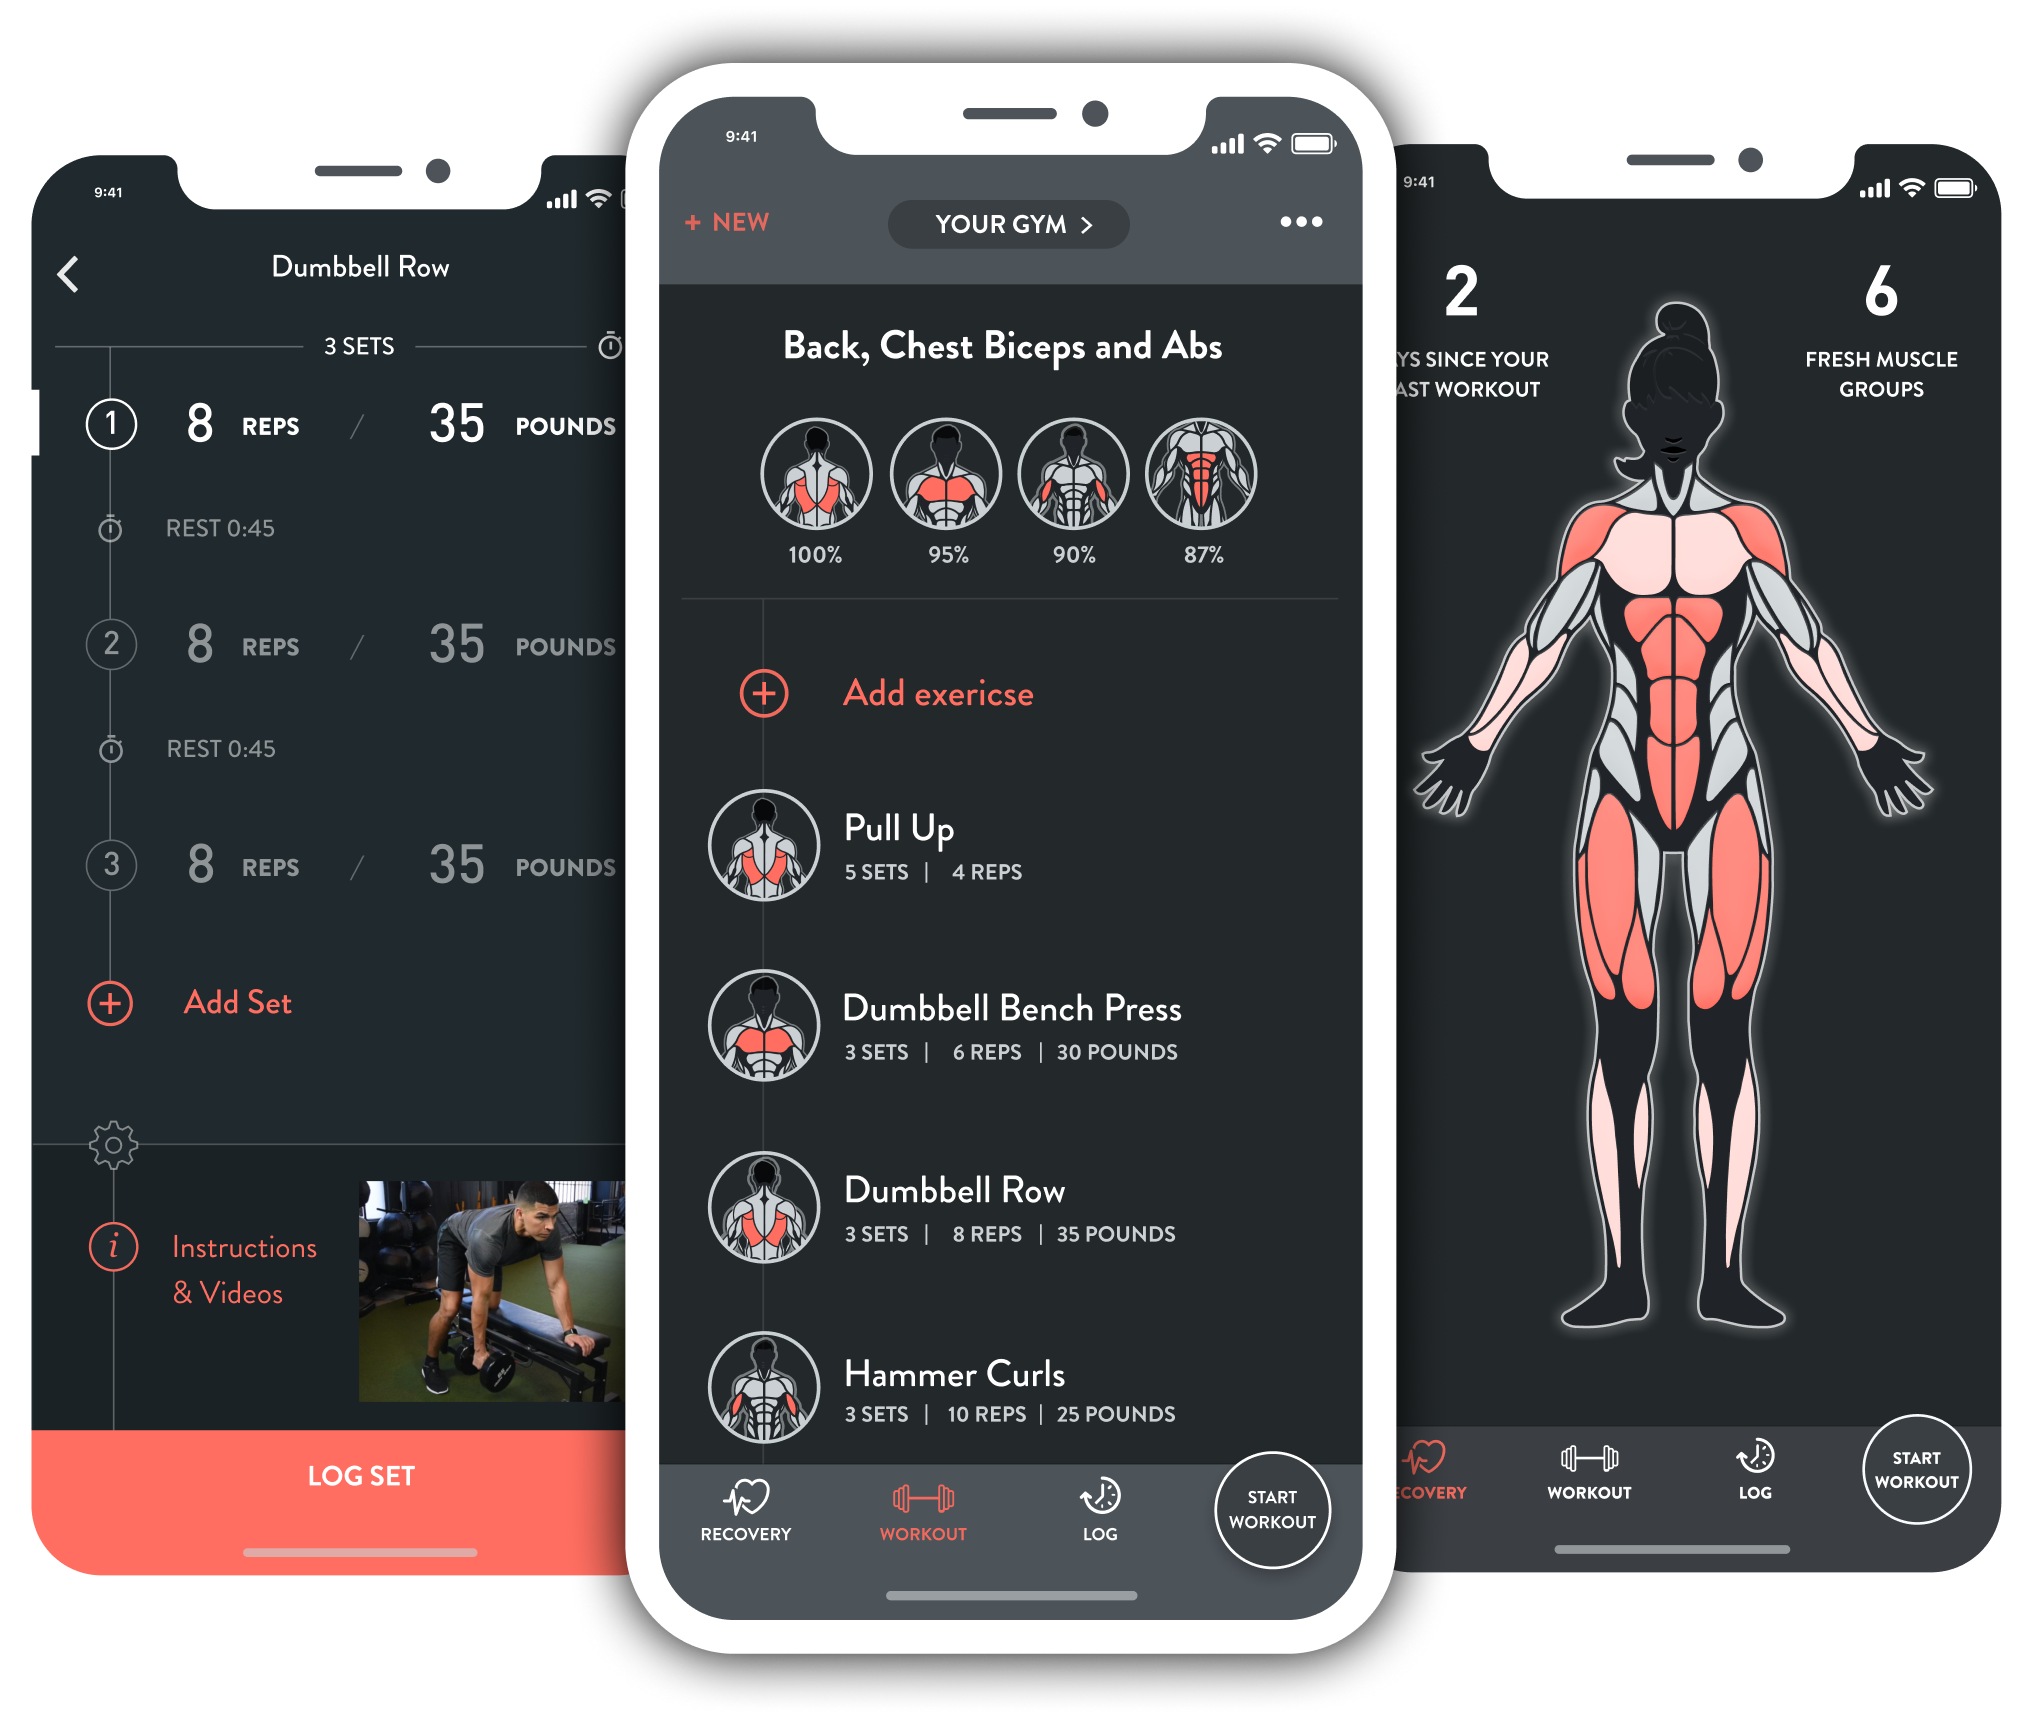 A smarter workout - Fitbod's advanced machine learning algorithm studies your performance and automatically scales your workouts as you progress.